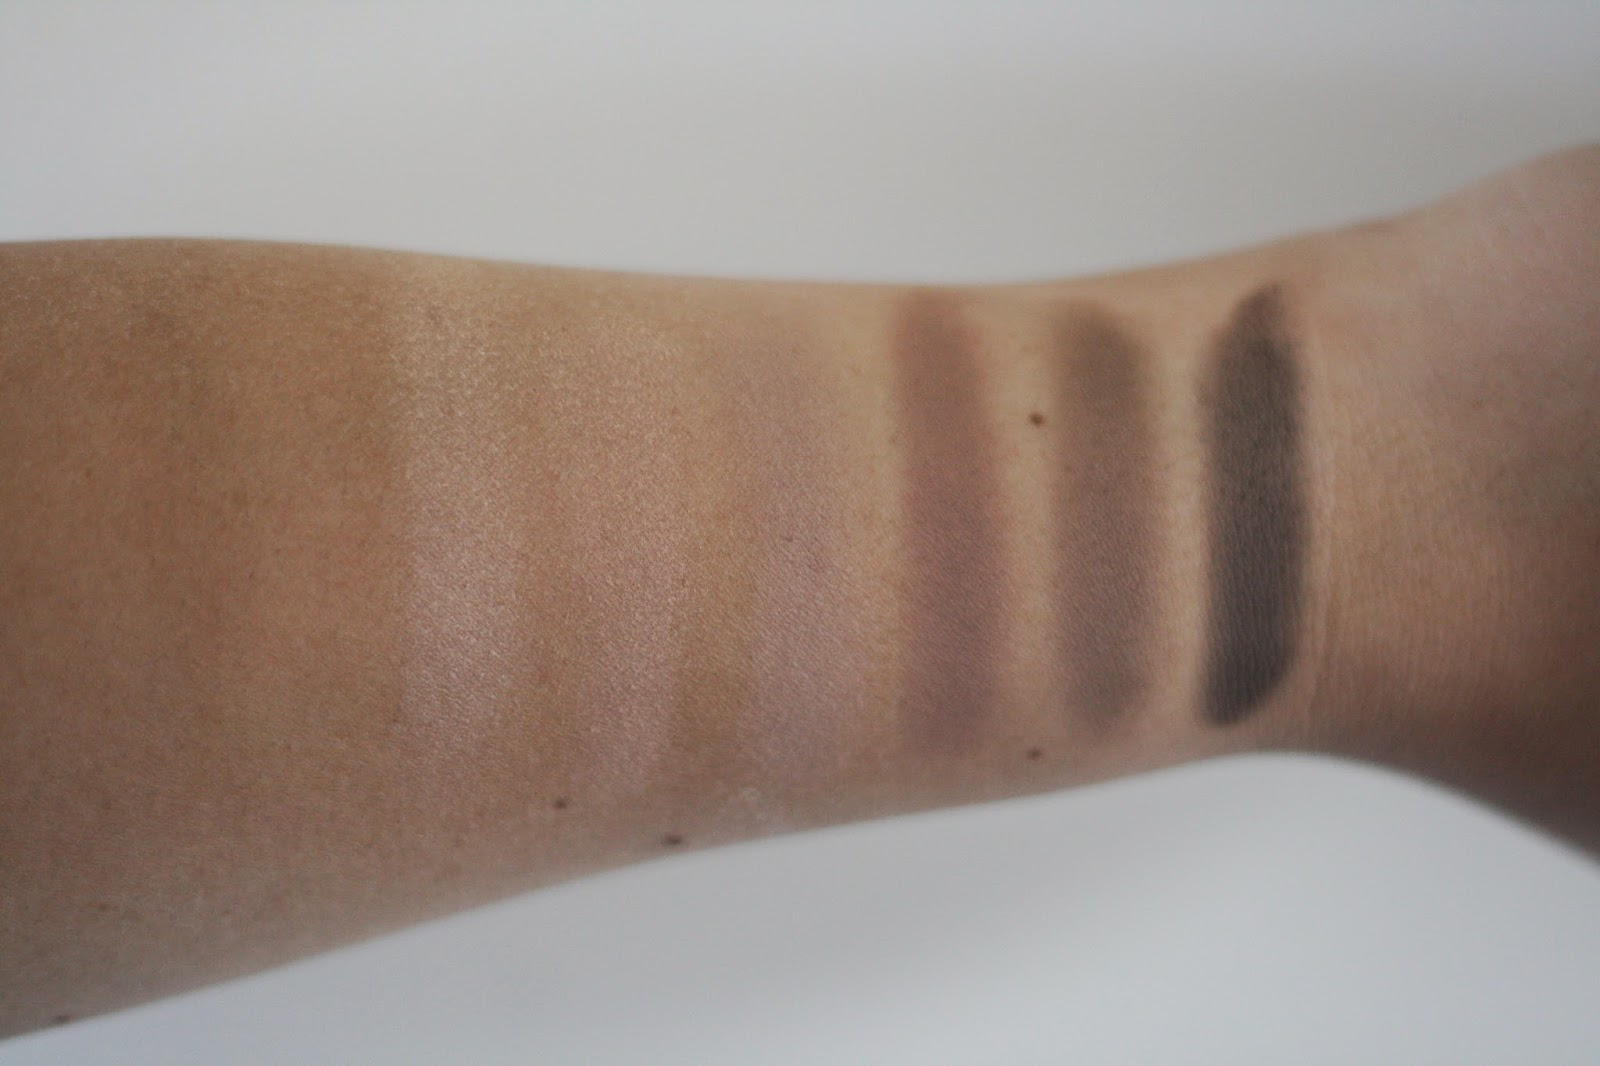 Urban Decay, Swatches, Basic Palette, Urban Decay Basic Palette